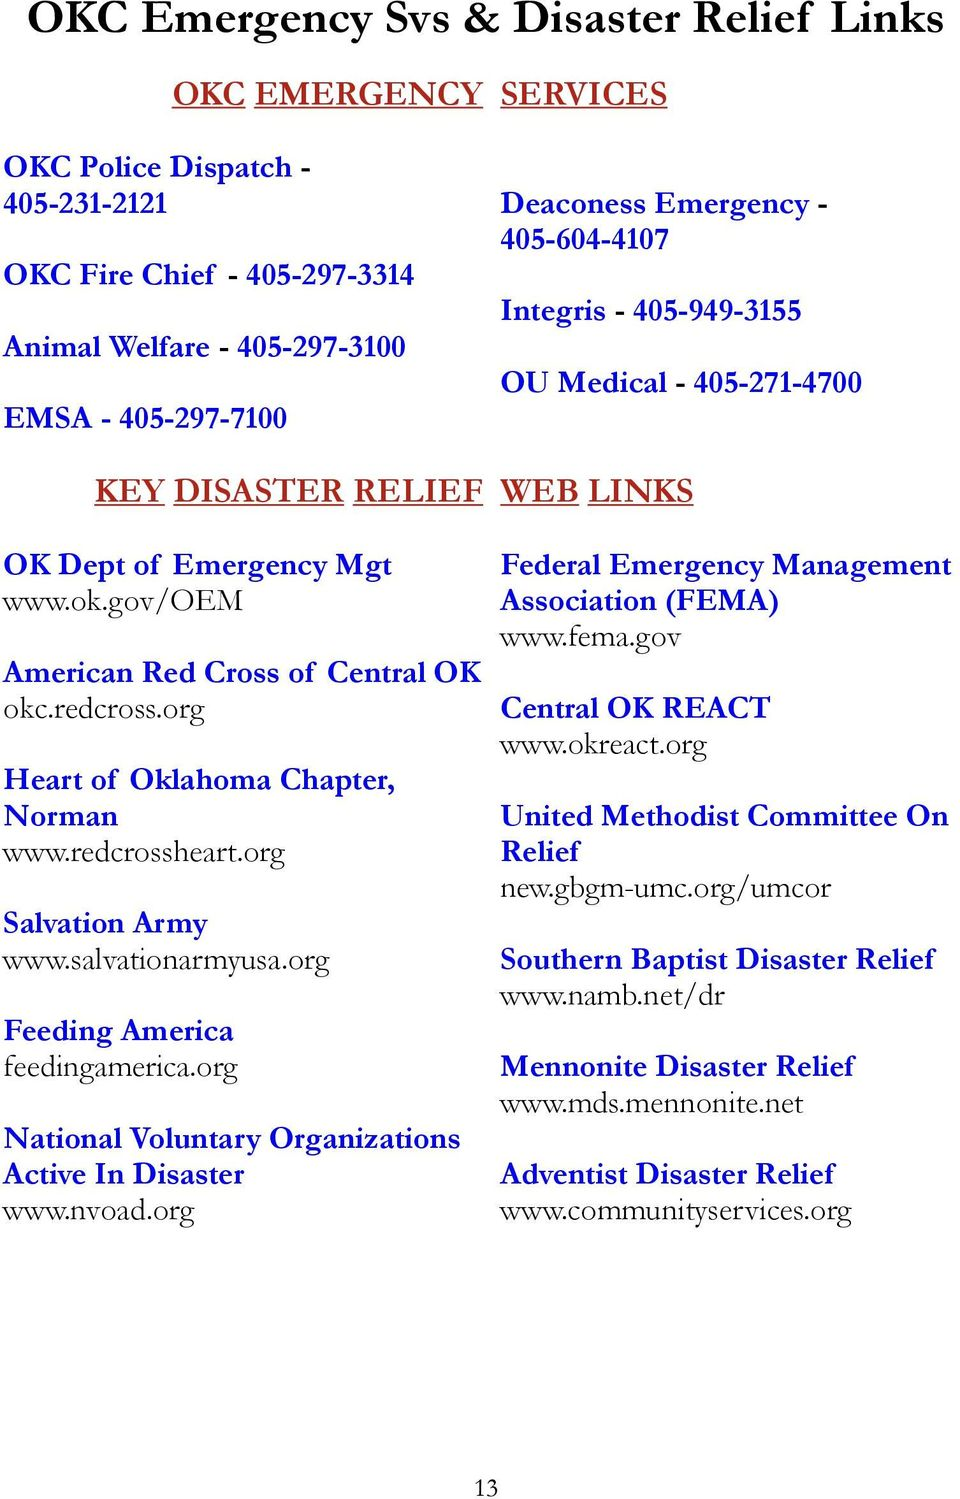 org Feeding America feedingamerica.org National Voluntary Organizations Active In Disaster www.nvoad.